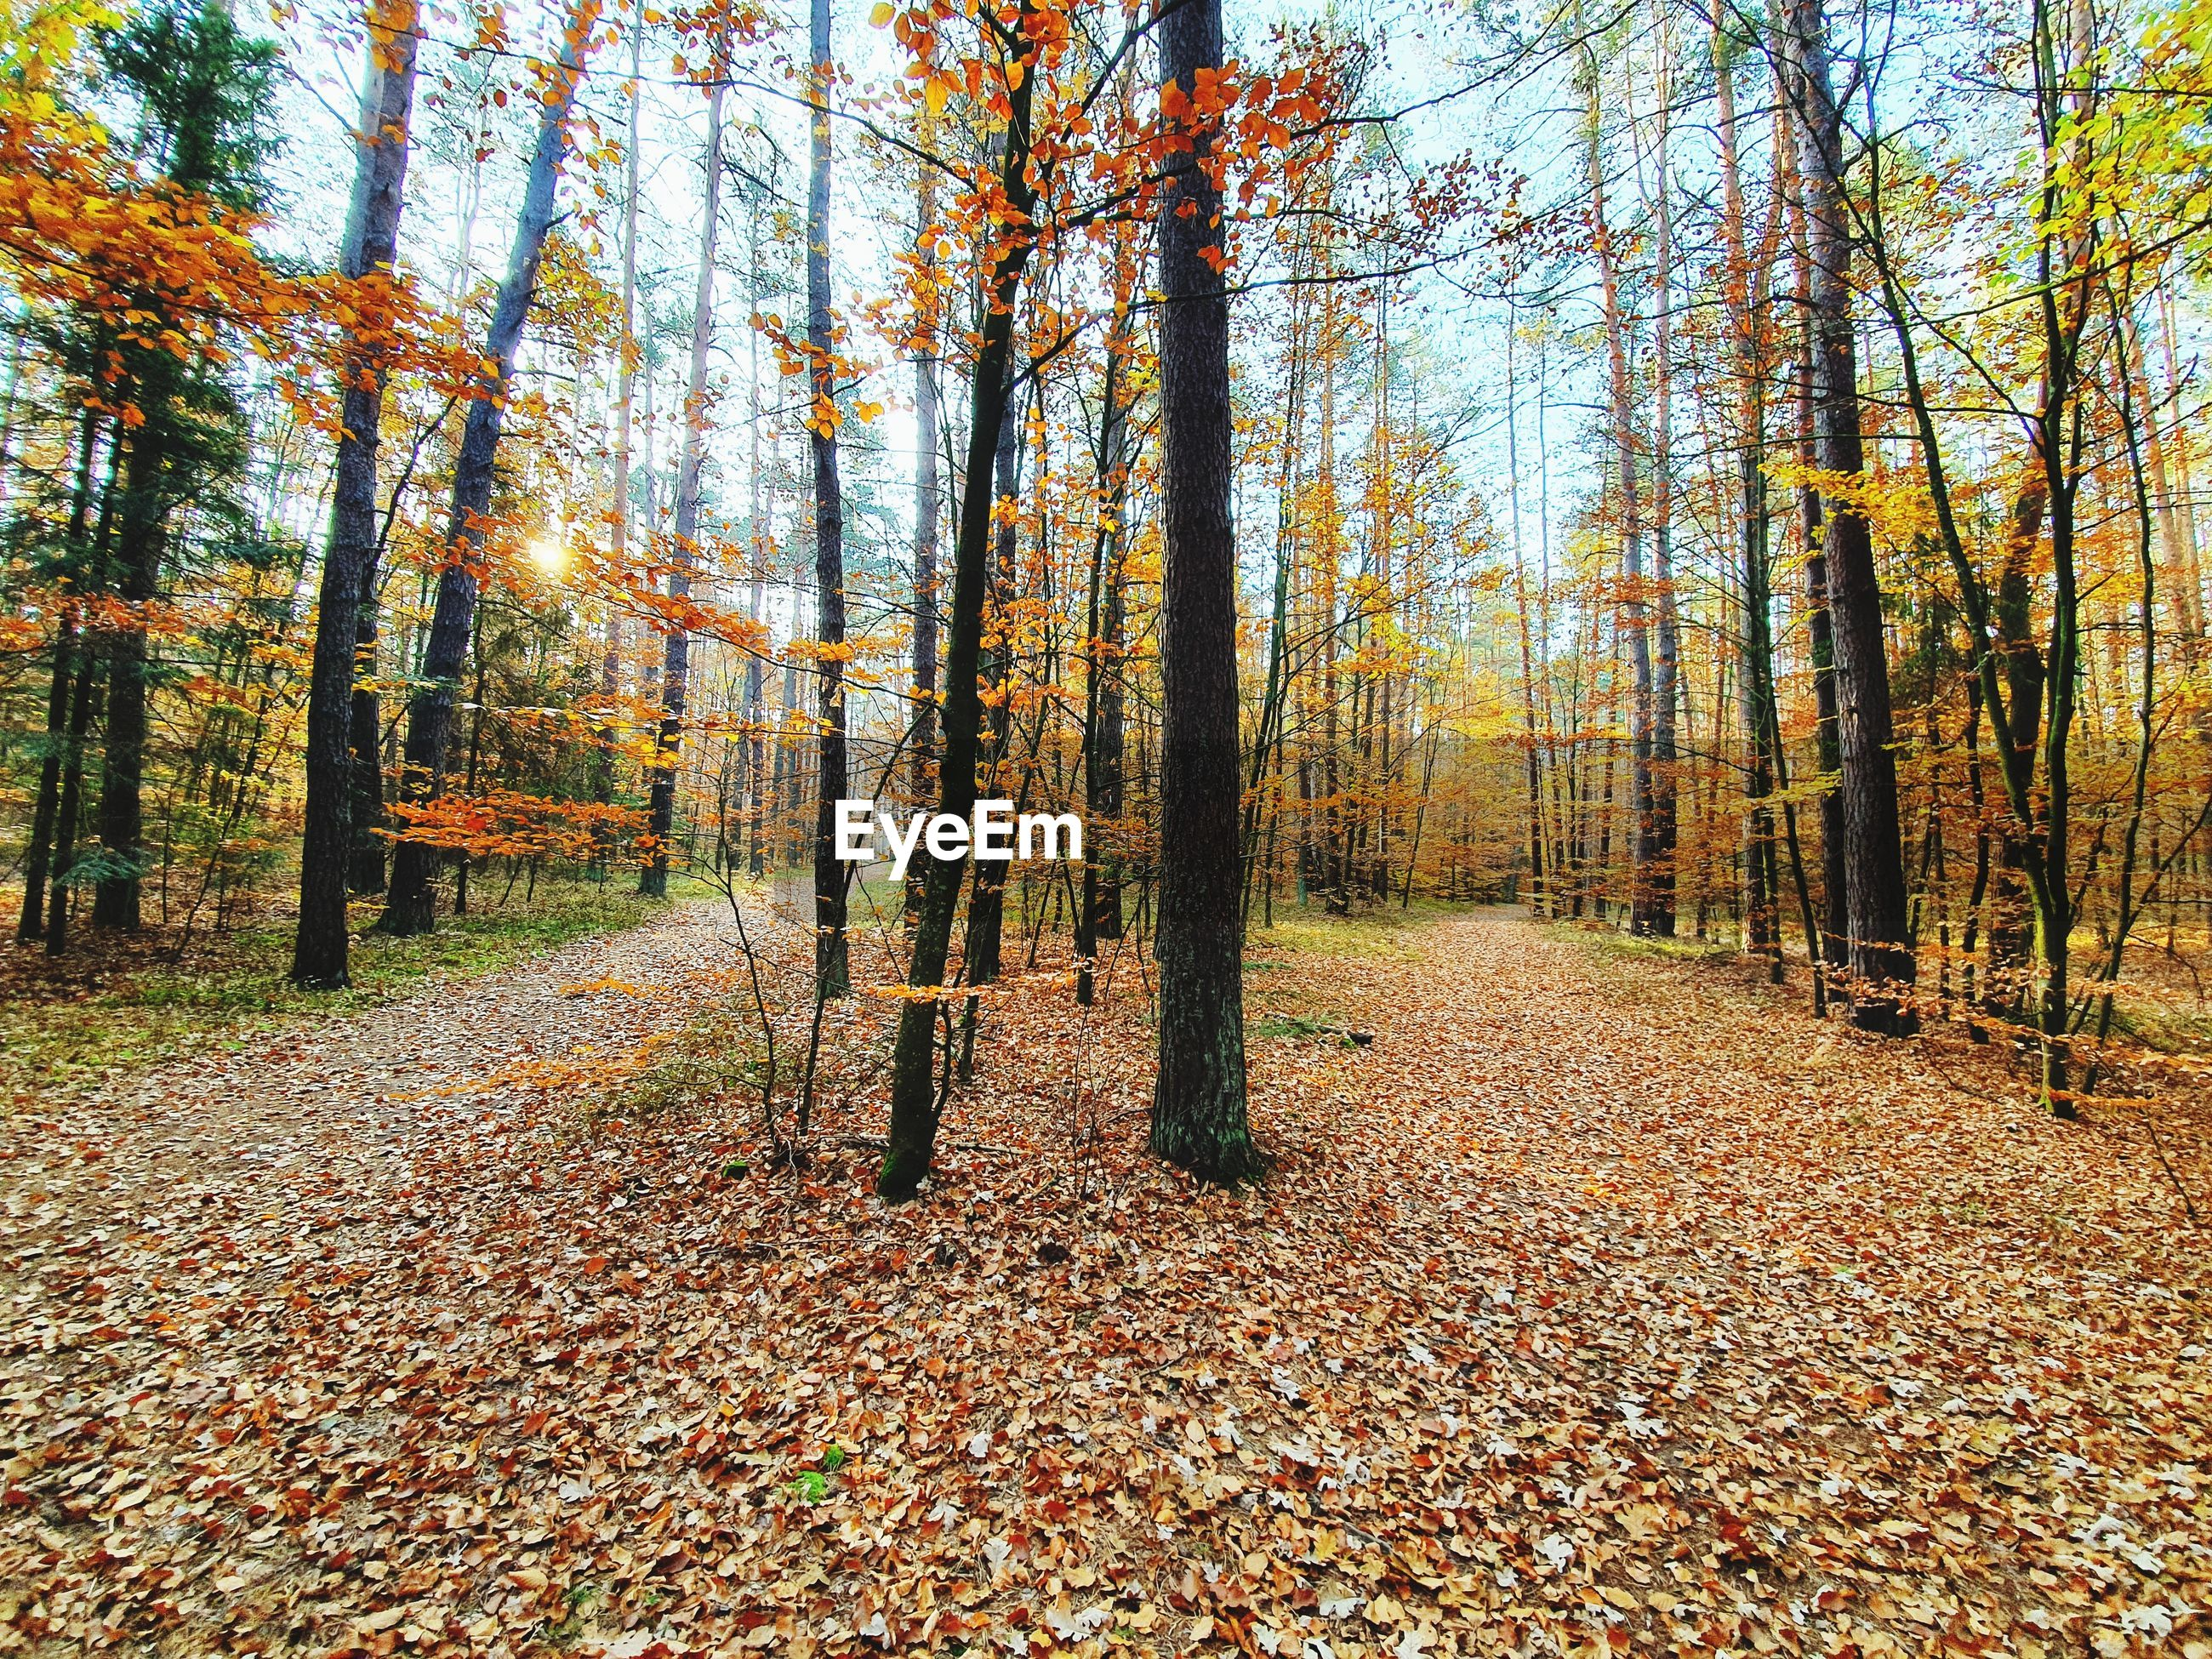 View of trees in forest during autumn